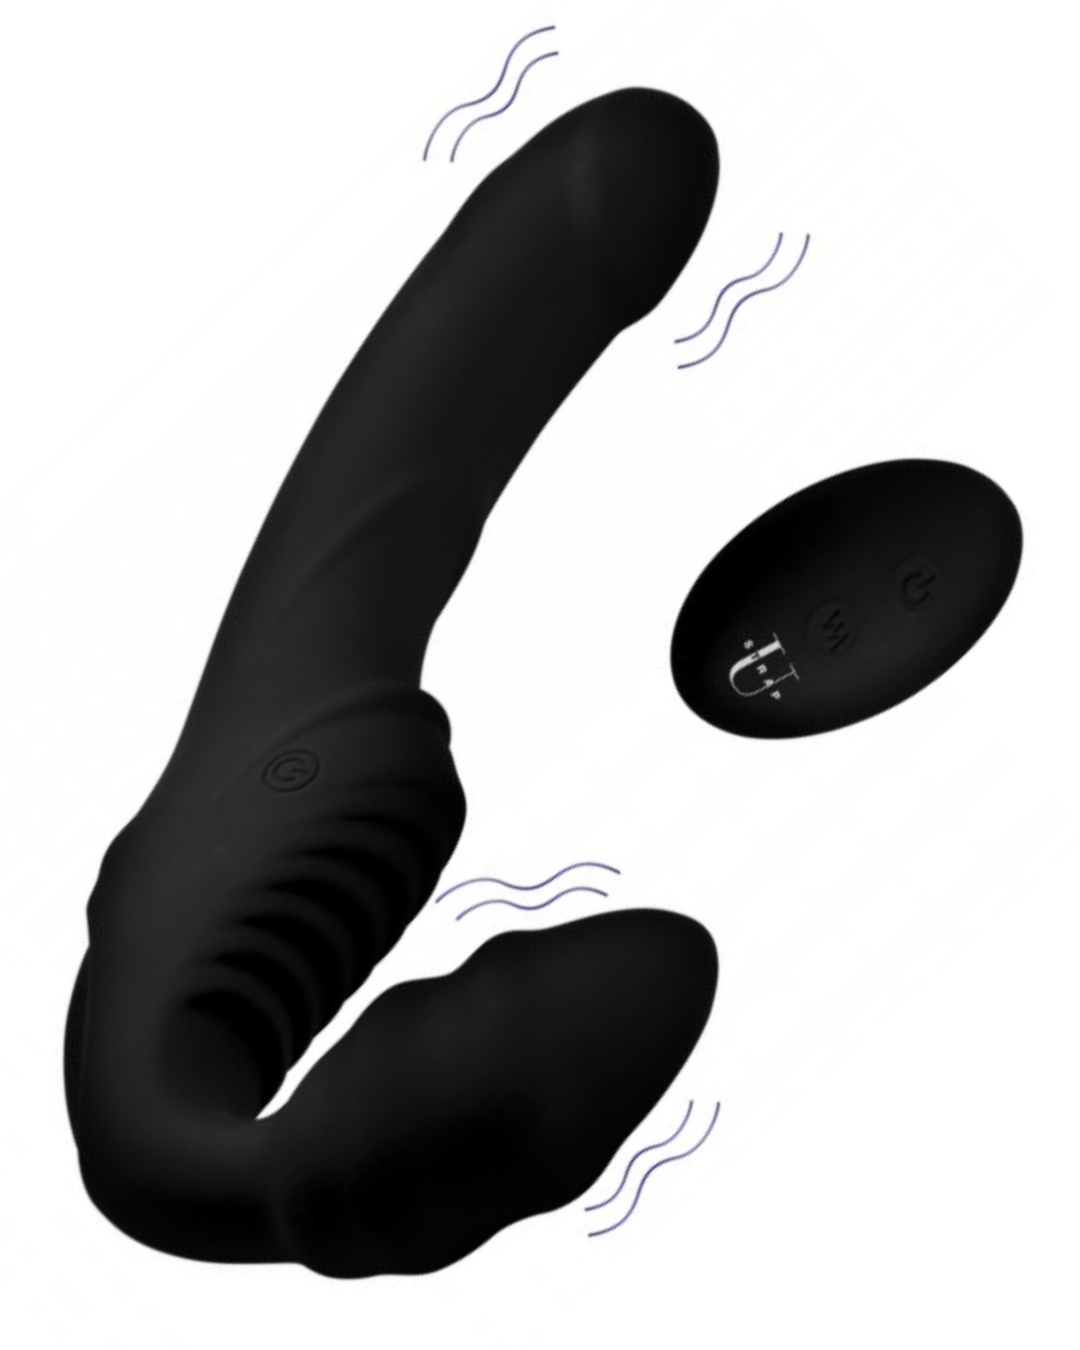 Pro Rider Vibrating Silicone Strapless Strap On with Remote Control